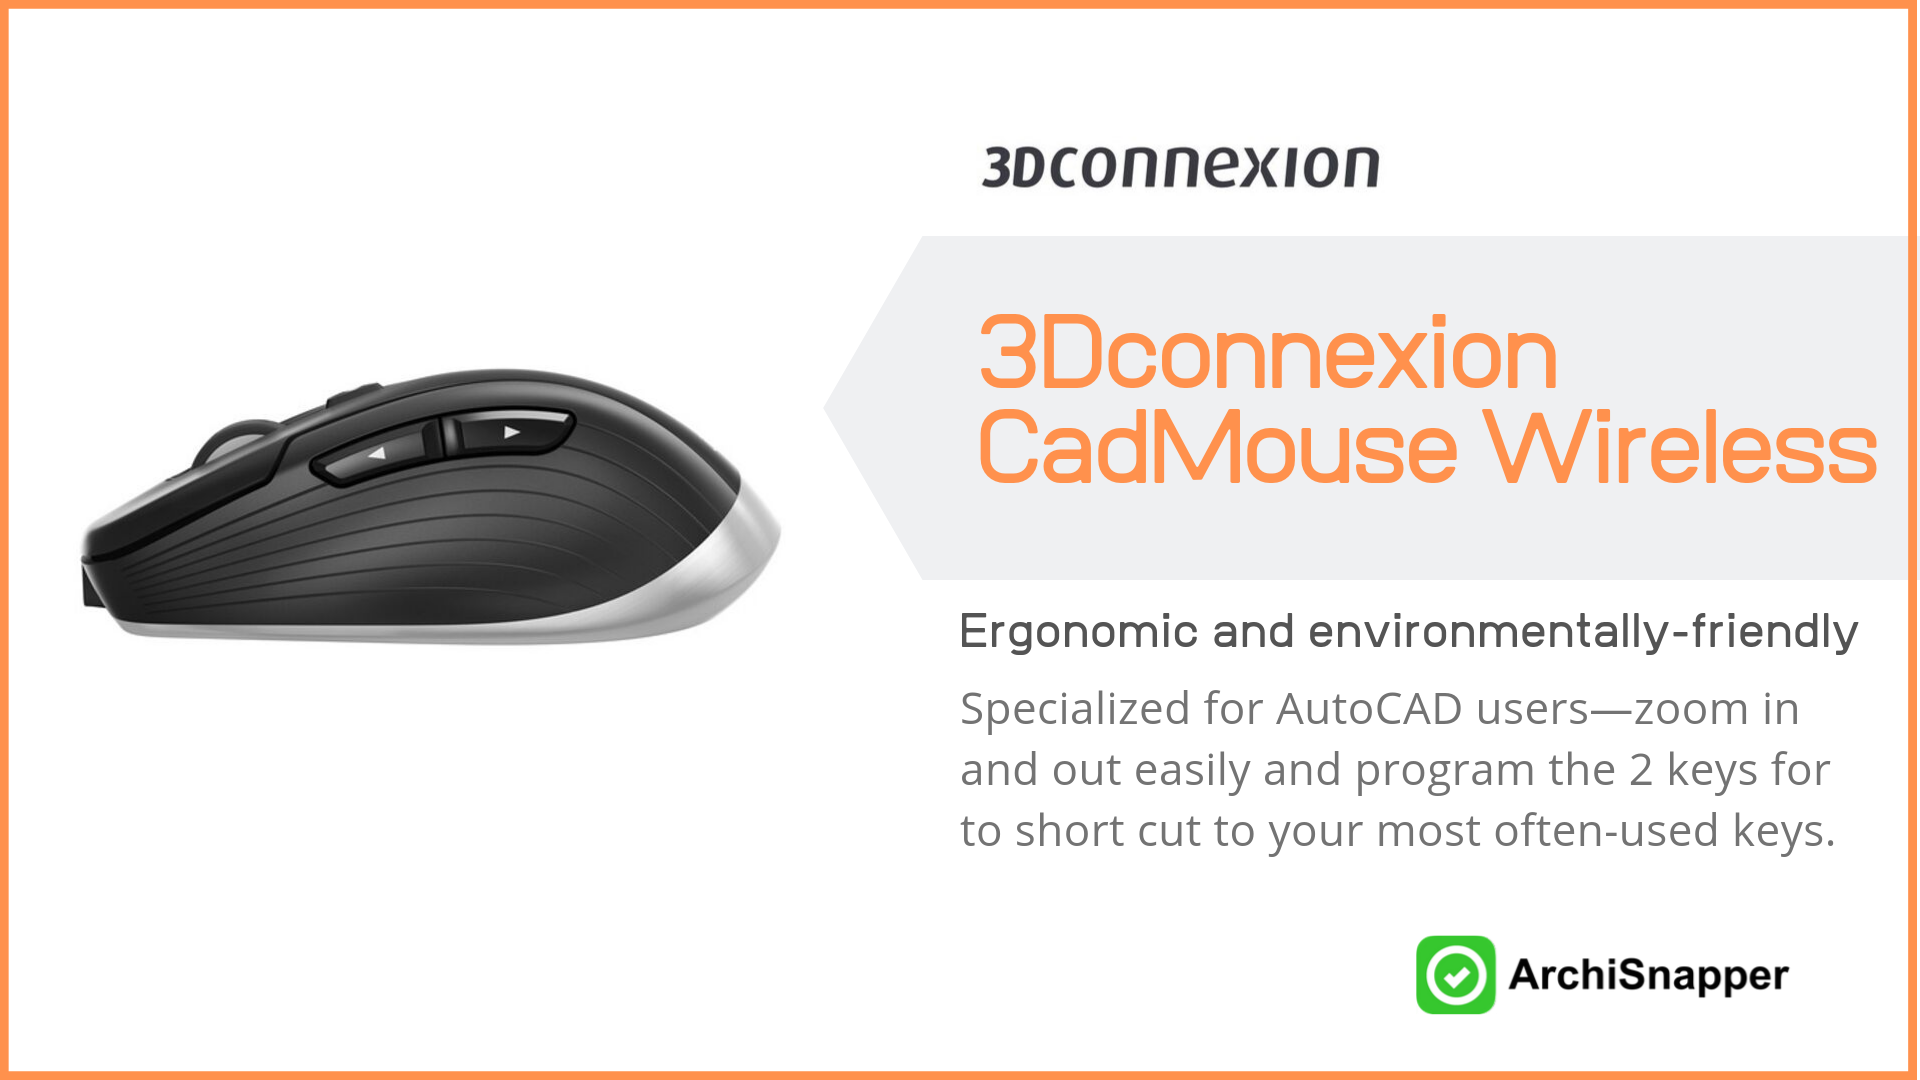 3Dconnexion CadMouse Wireless | List of the 15 must-have tech tools and accessories ideal for architects presented by Archisnapper